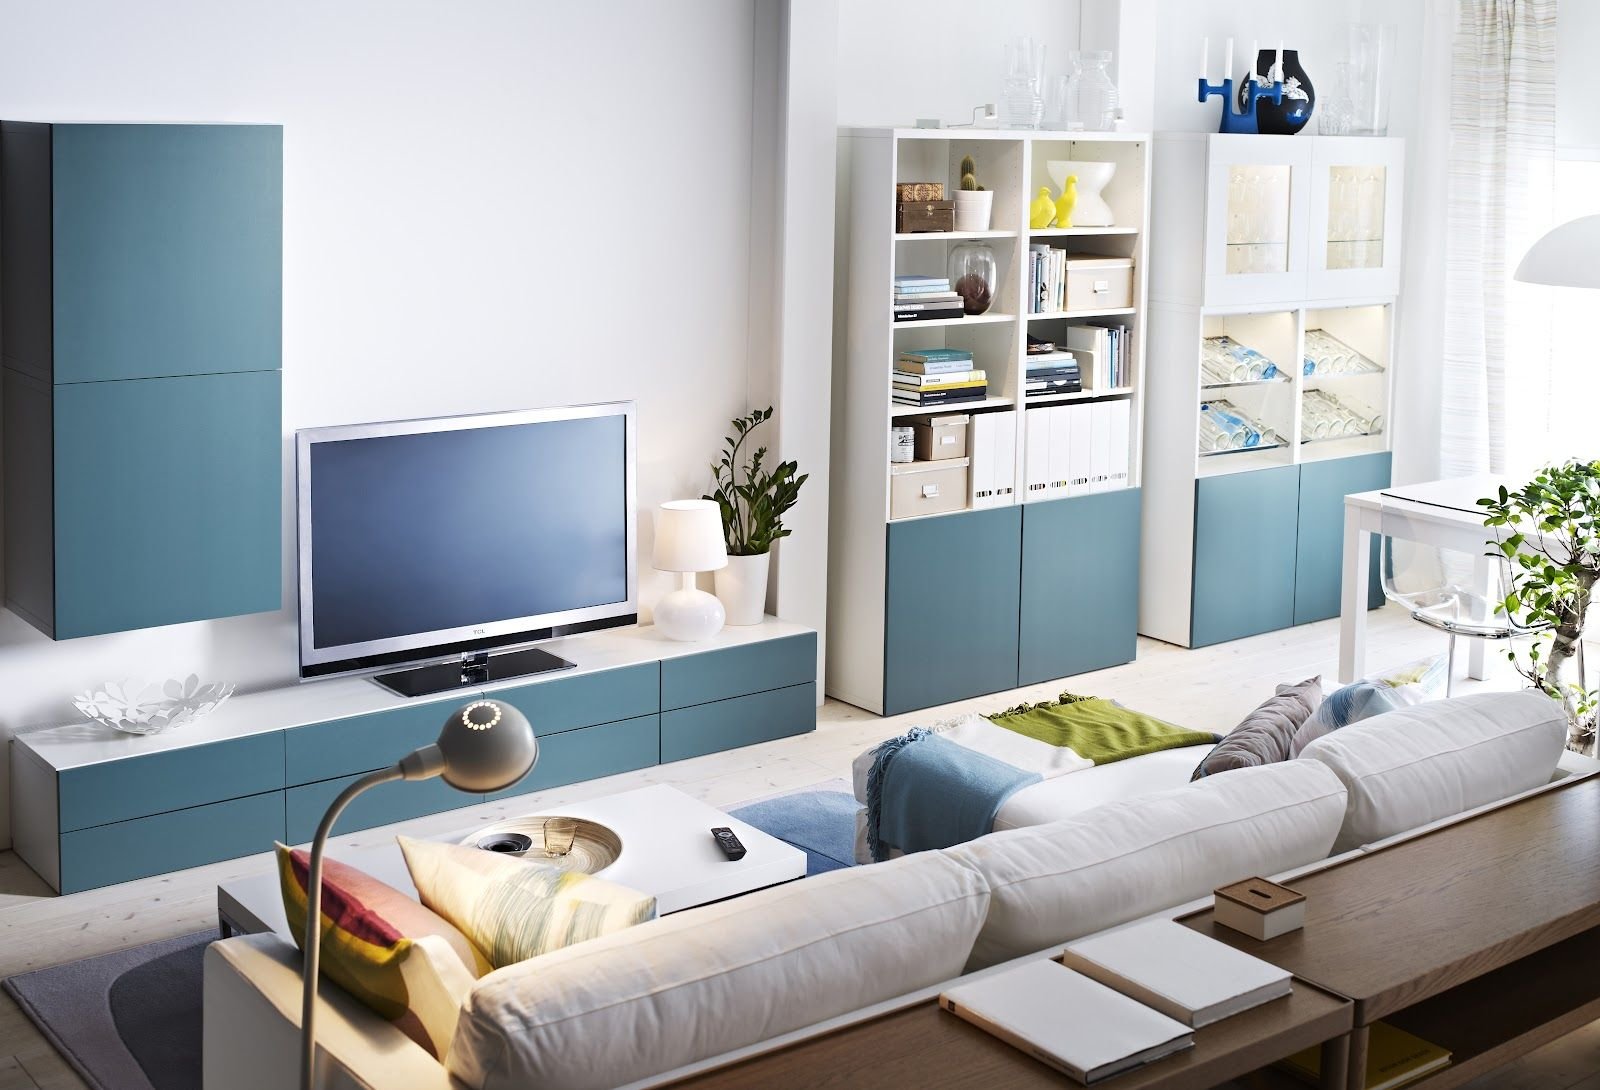 IKEA 2013 Catalog Preview  Skimbaco Lifestyle online magazine  Skimbaco Lifestyle  online